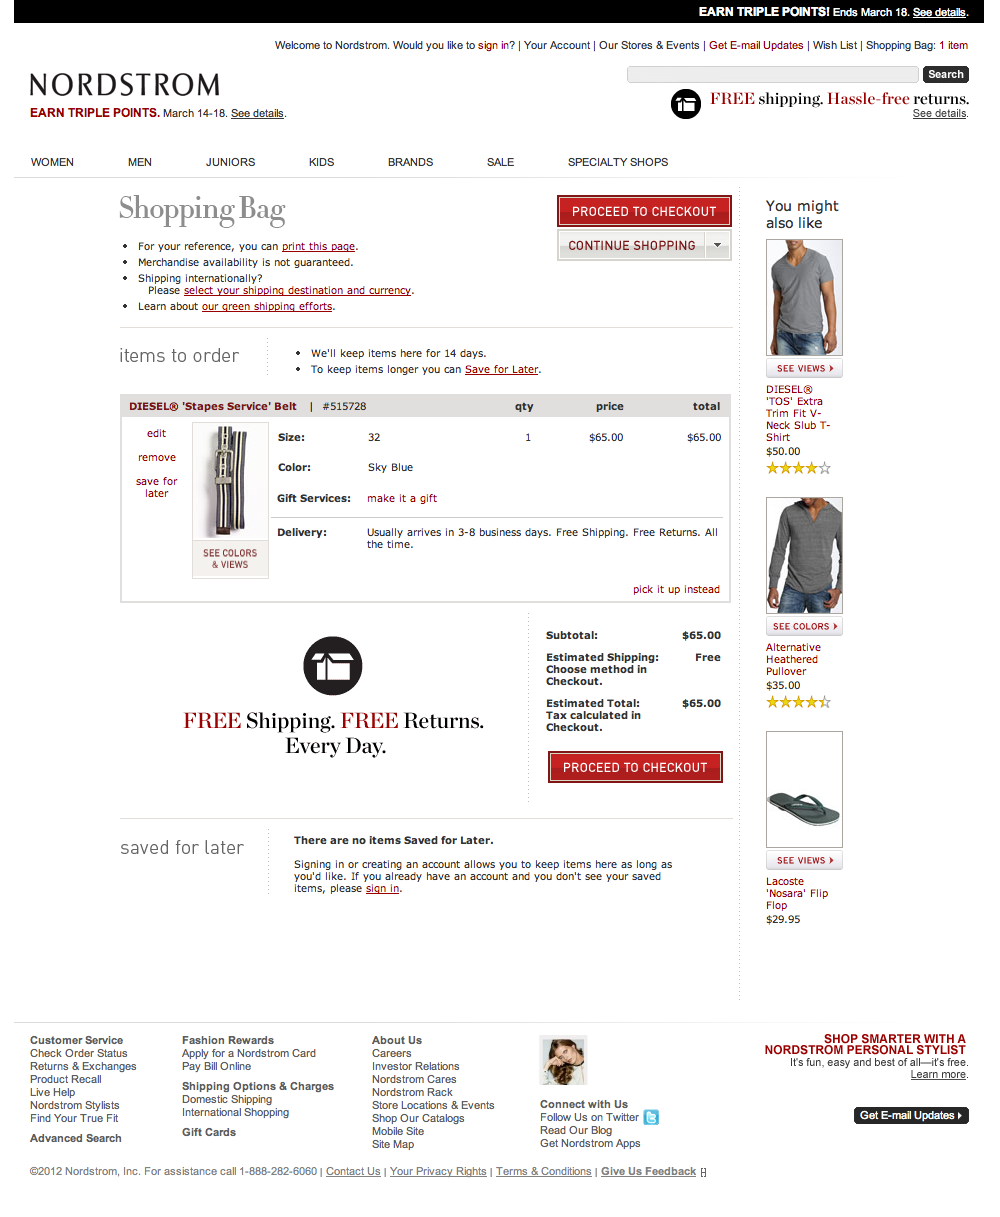 Nordstrom's Cart Checkout Step